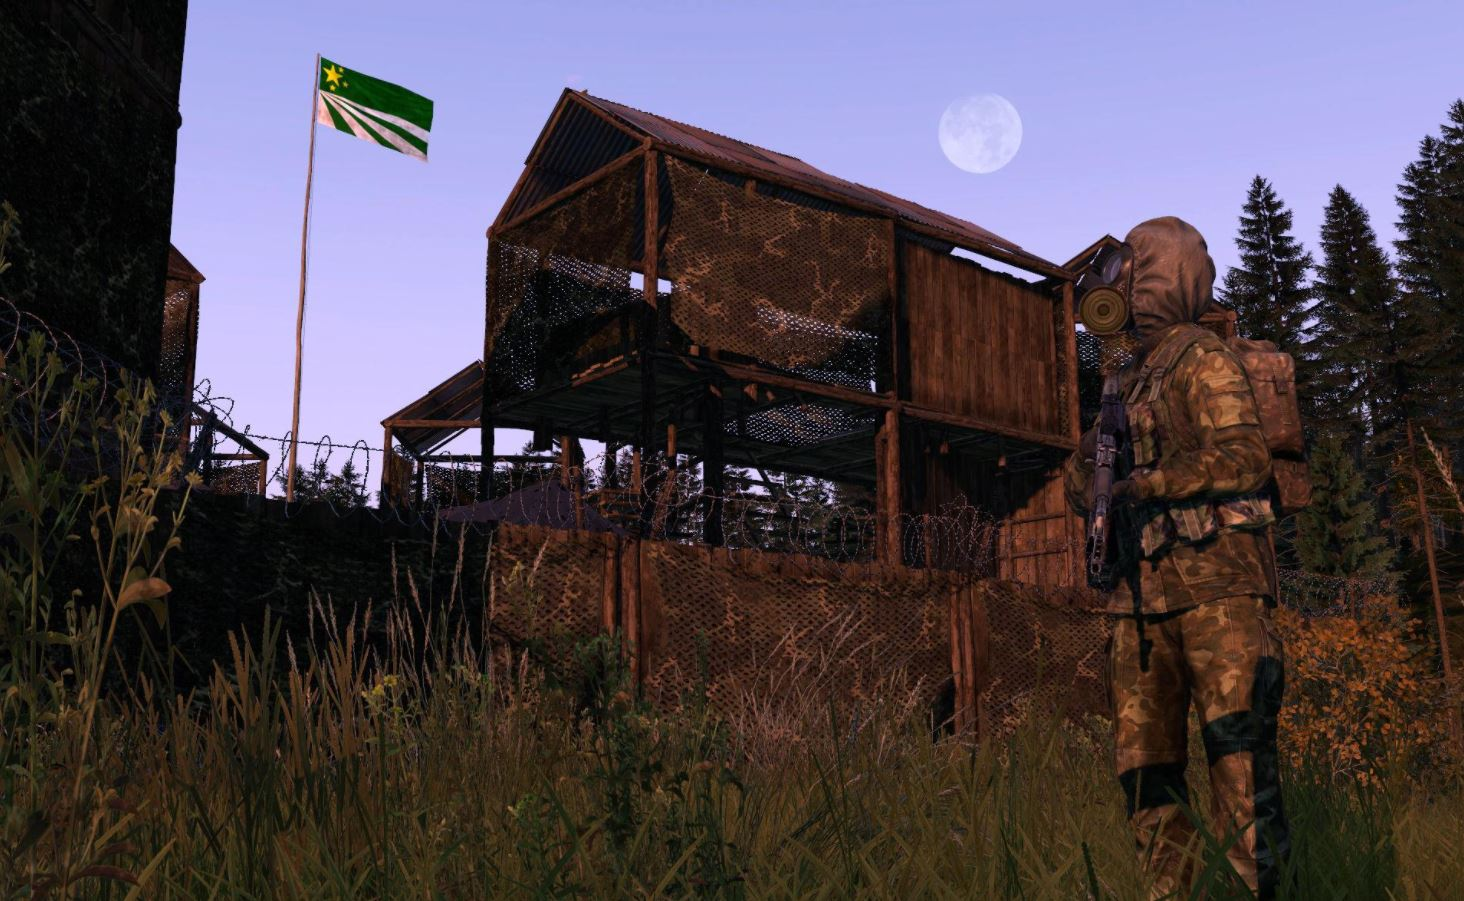 dayz update 1.09 base building flaggen